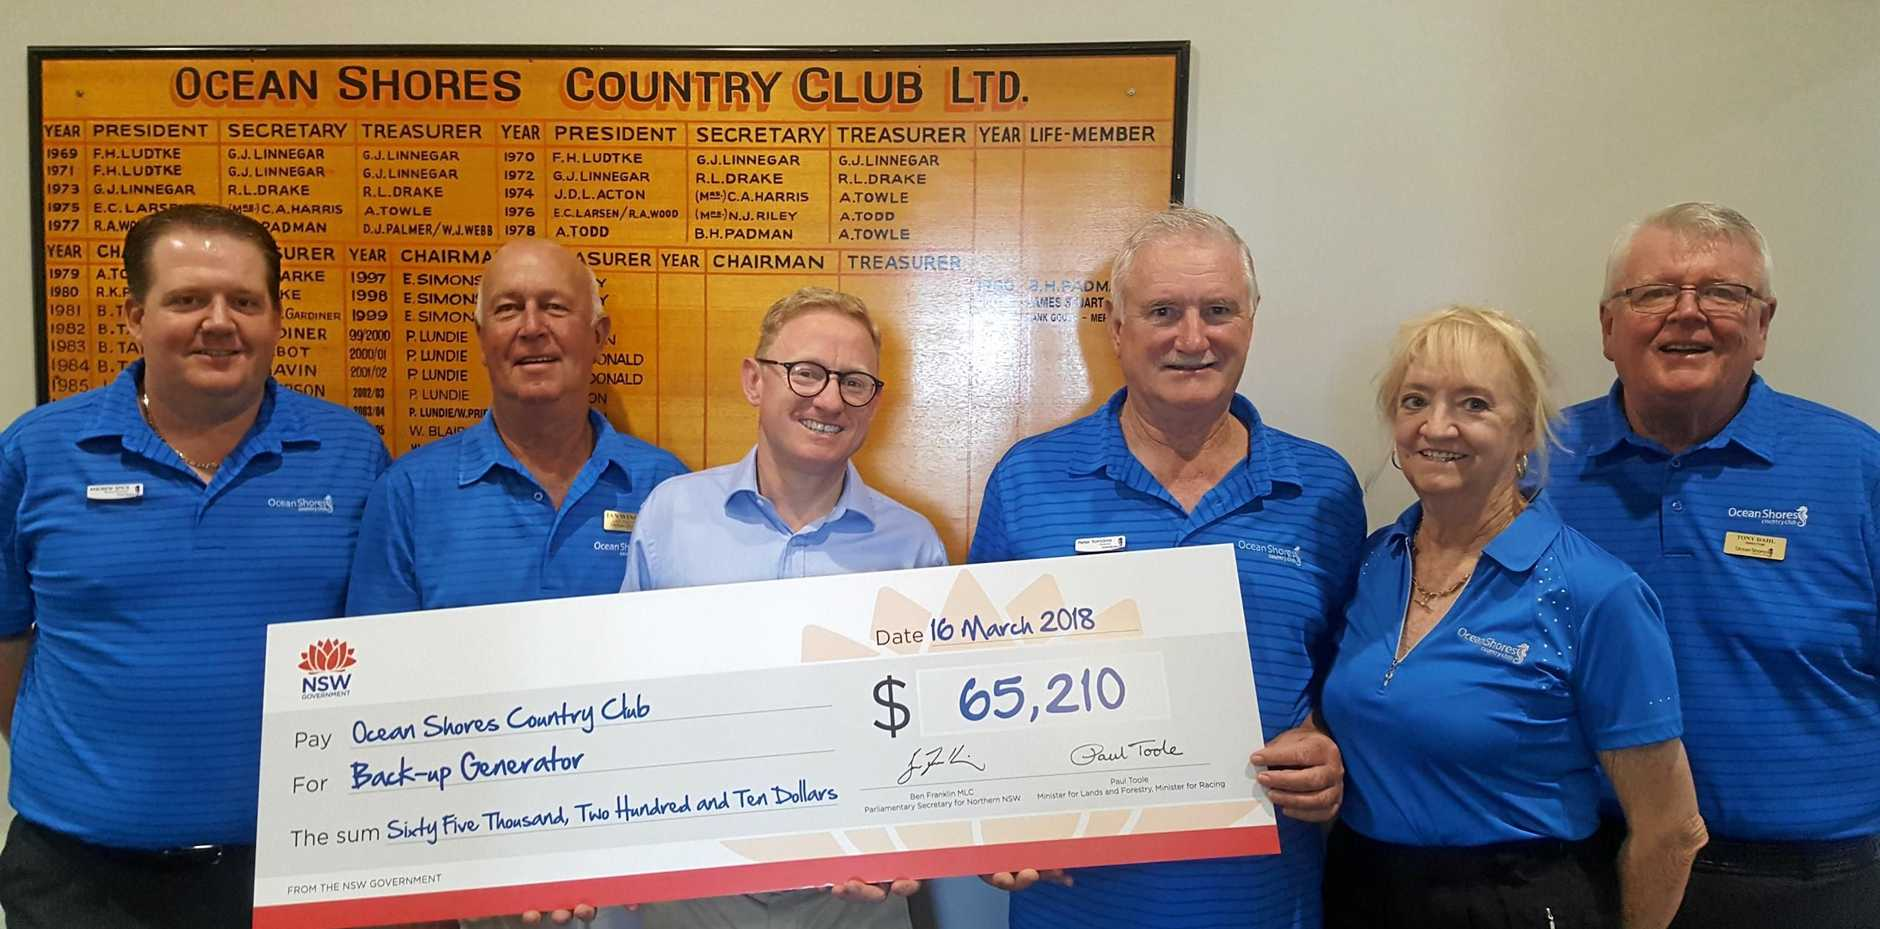 GENERATION: Nationals Parliamentary Secretary for Renewable Energy Ben Franklin, presenting the funding to the Club - General Manager Andrew Spice, Golf Director Ian Wingad, Chairman Peter Tomaros, Treasurer Anne Slater, and Director Tony Dahl.